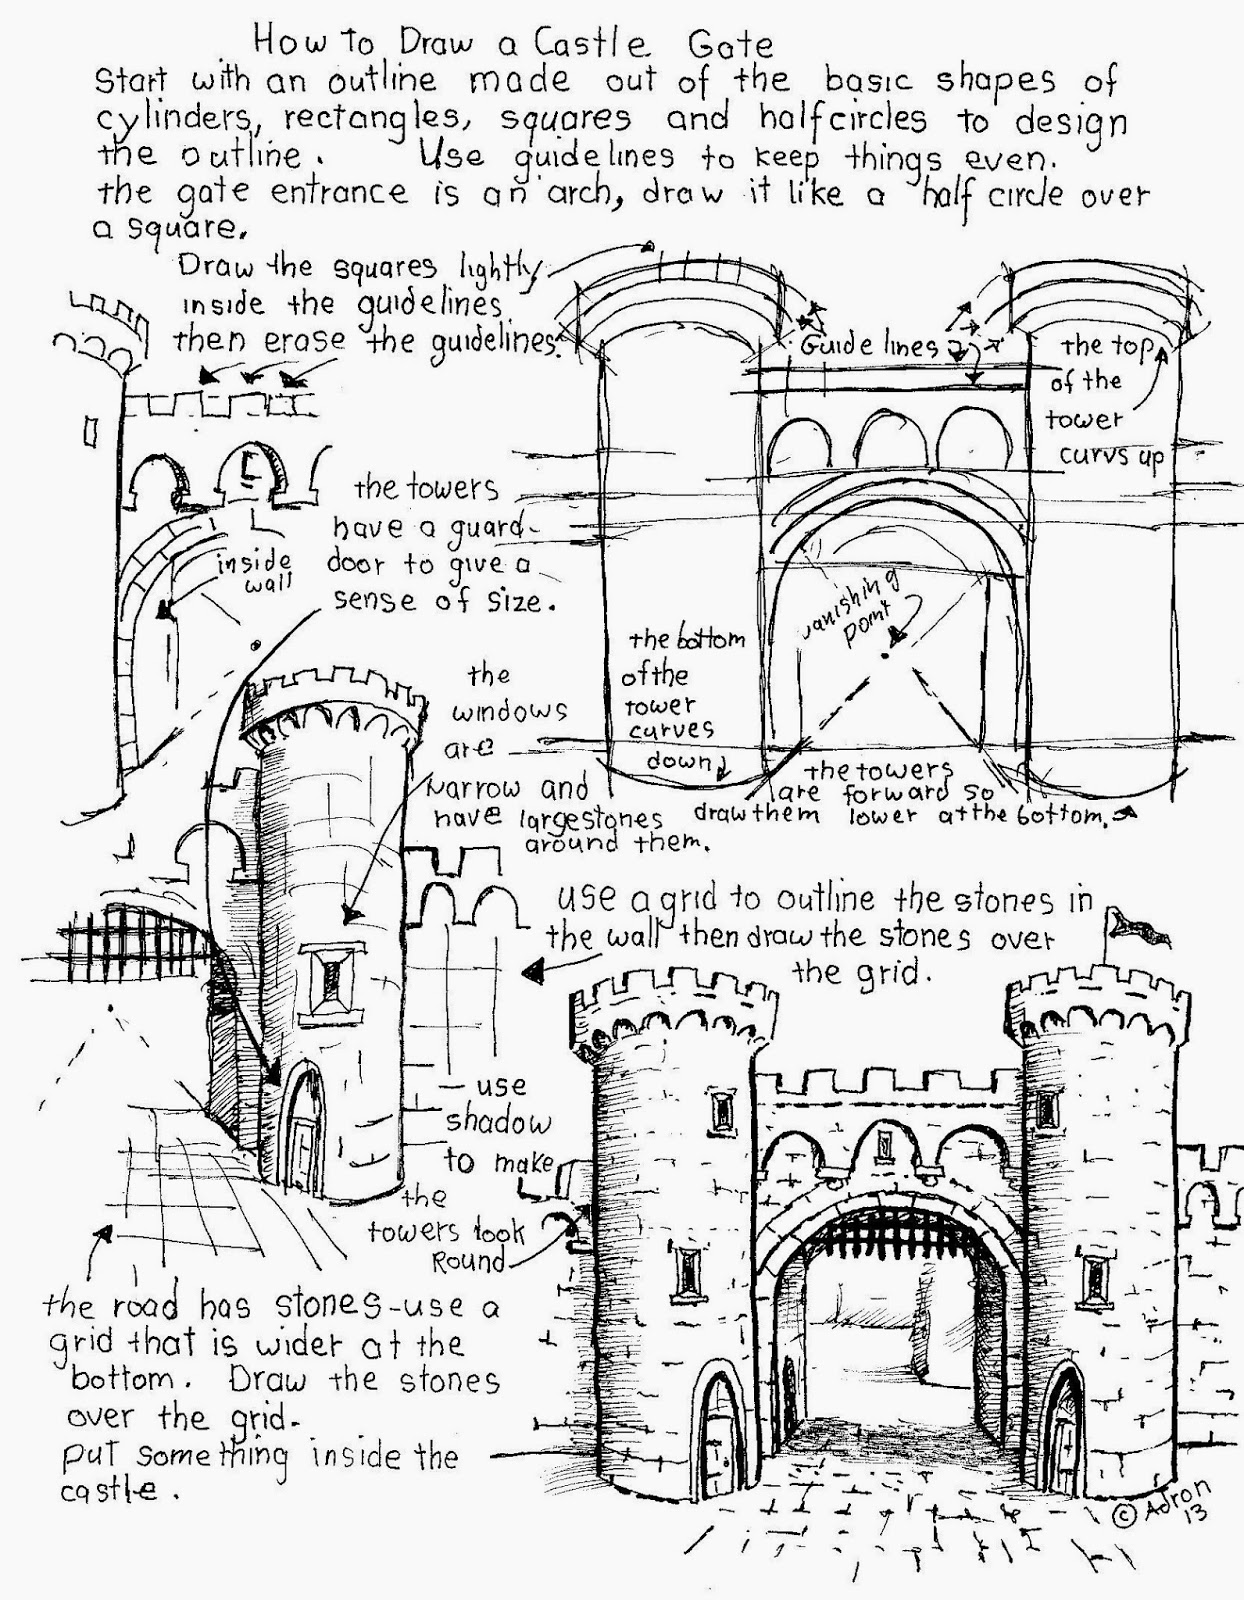 learn how to draw a castle gate